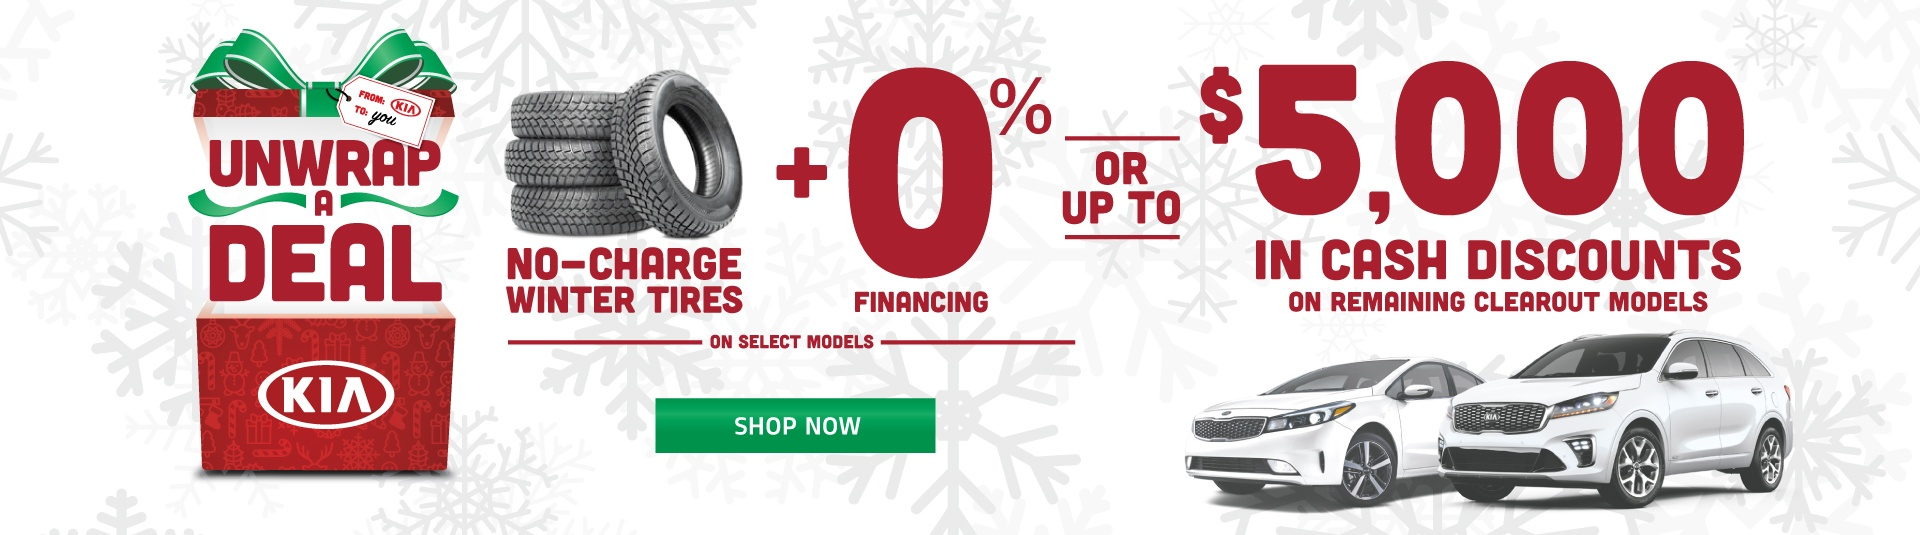 Mississauga Kia Unwrap A Deal Offer